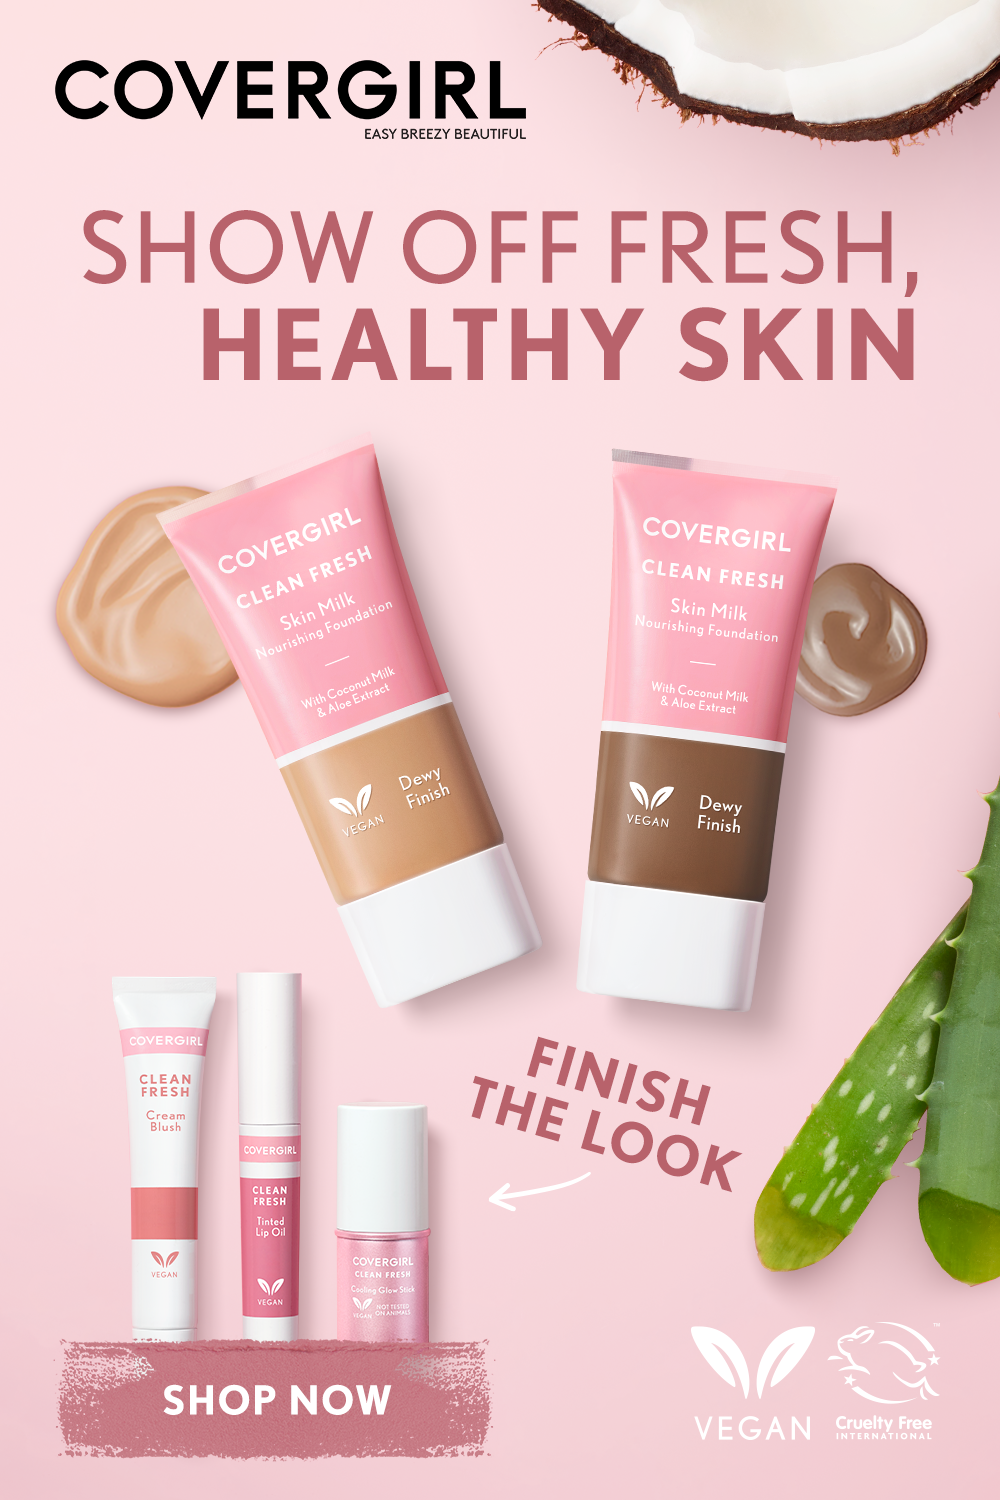 Pin By The Beauty Reviewer On Covergirl In 2020 Covergirl Clean